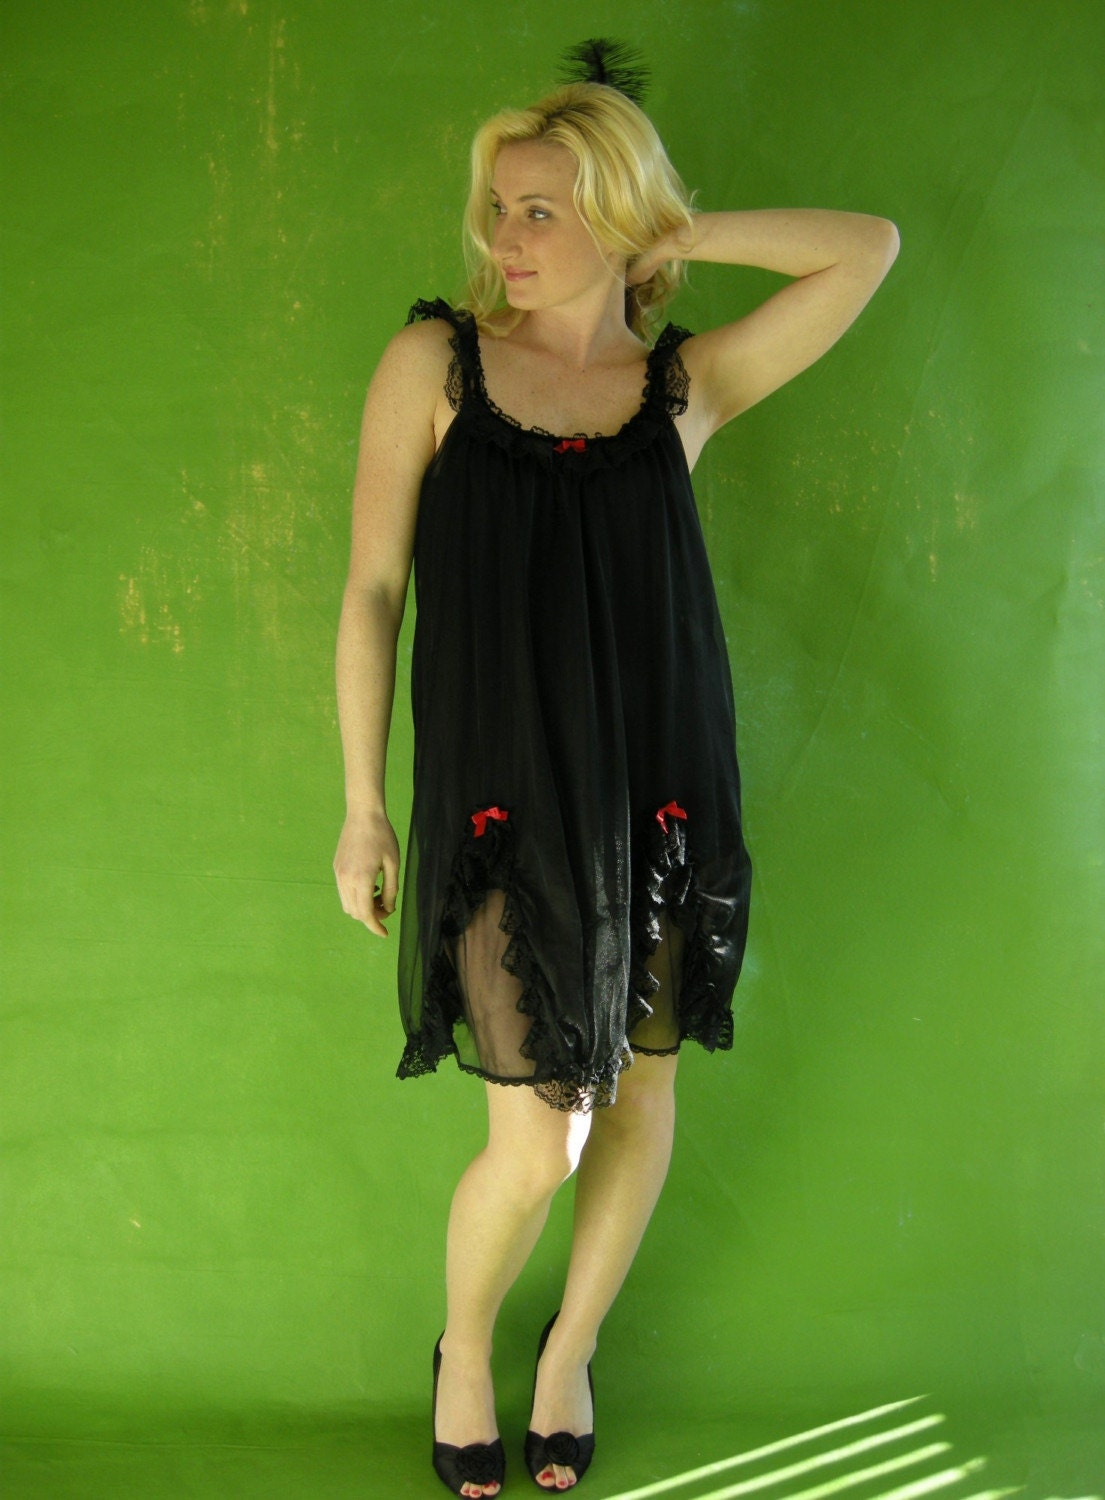 Black Ruffles Double Chiffon Lacy Vintage Babydoll by empressjade from etsy.com